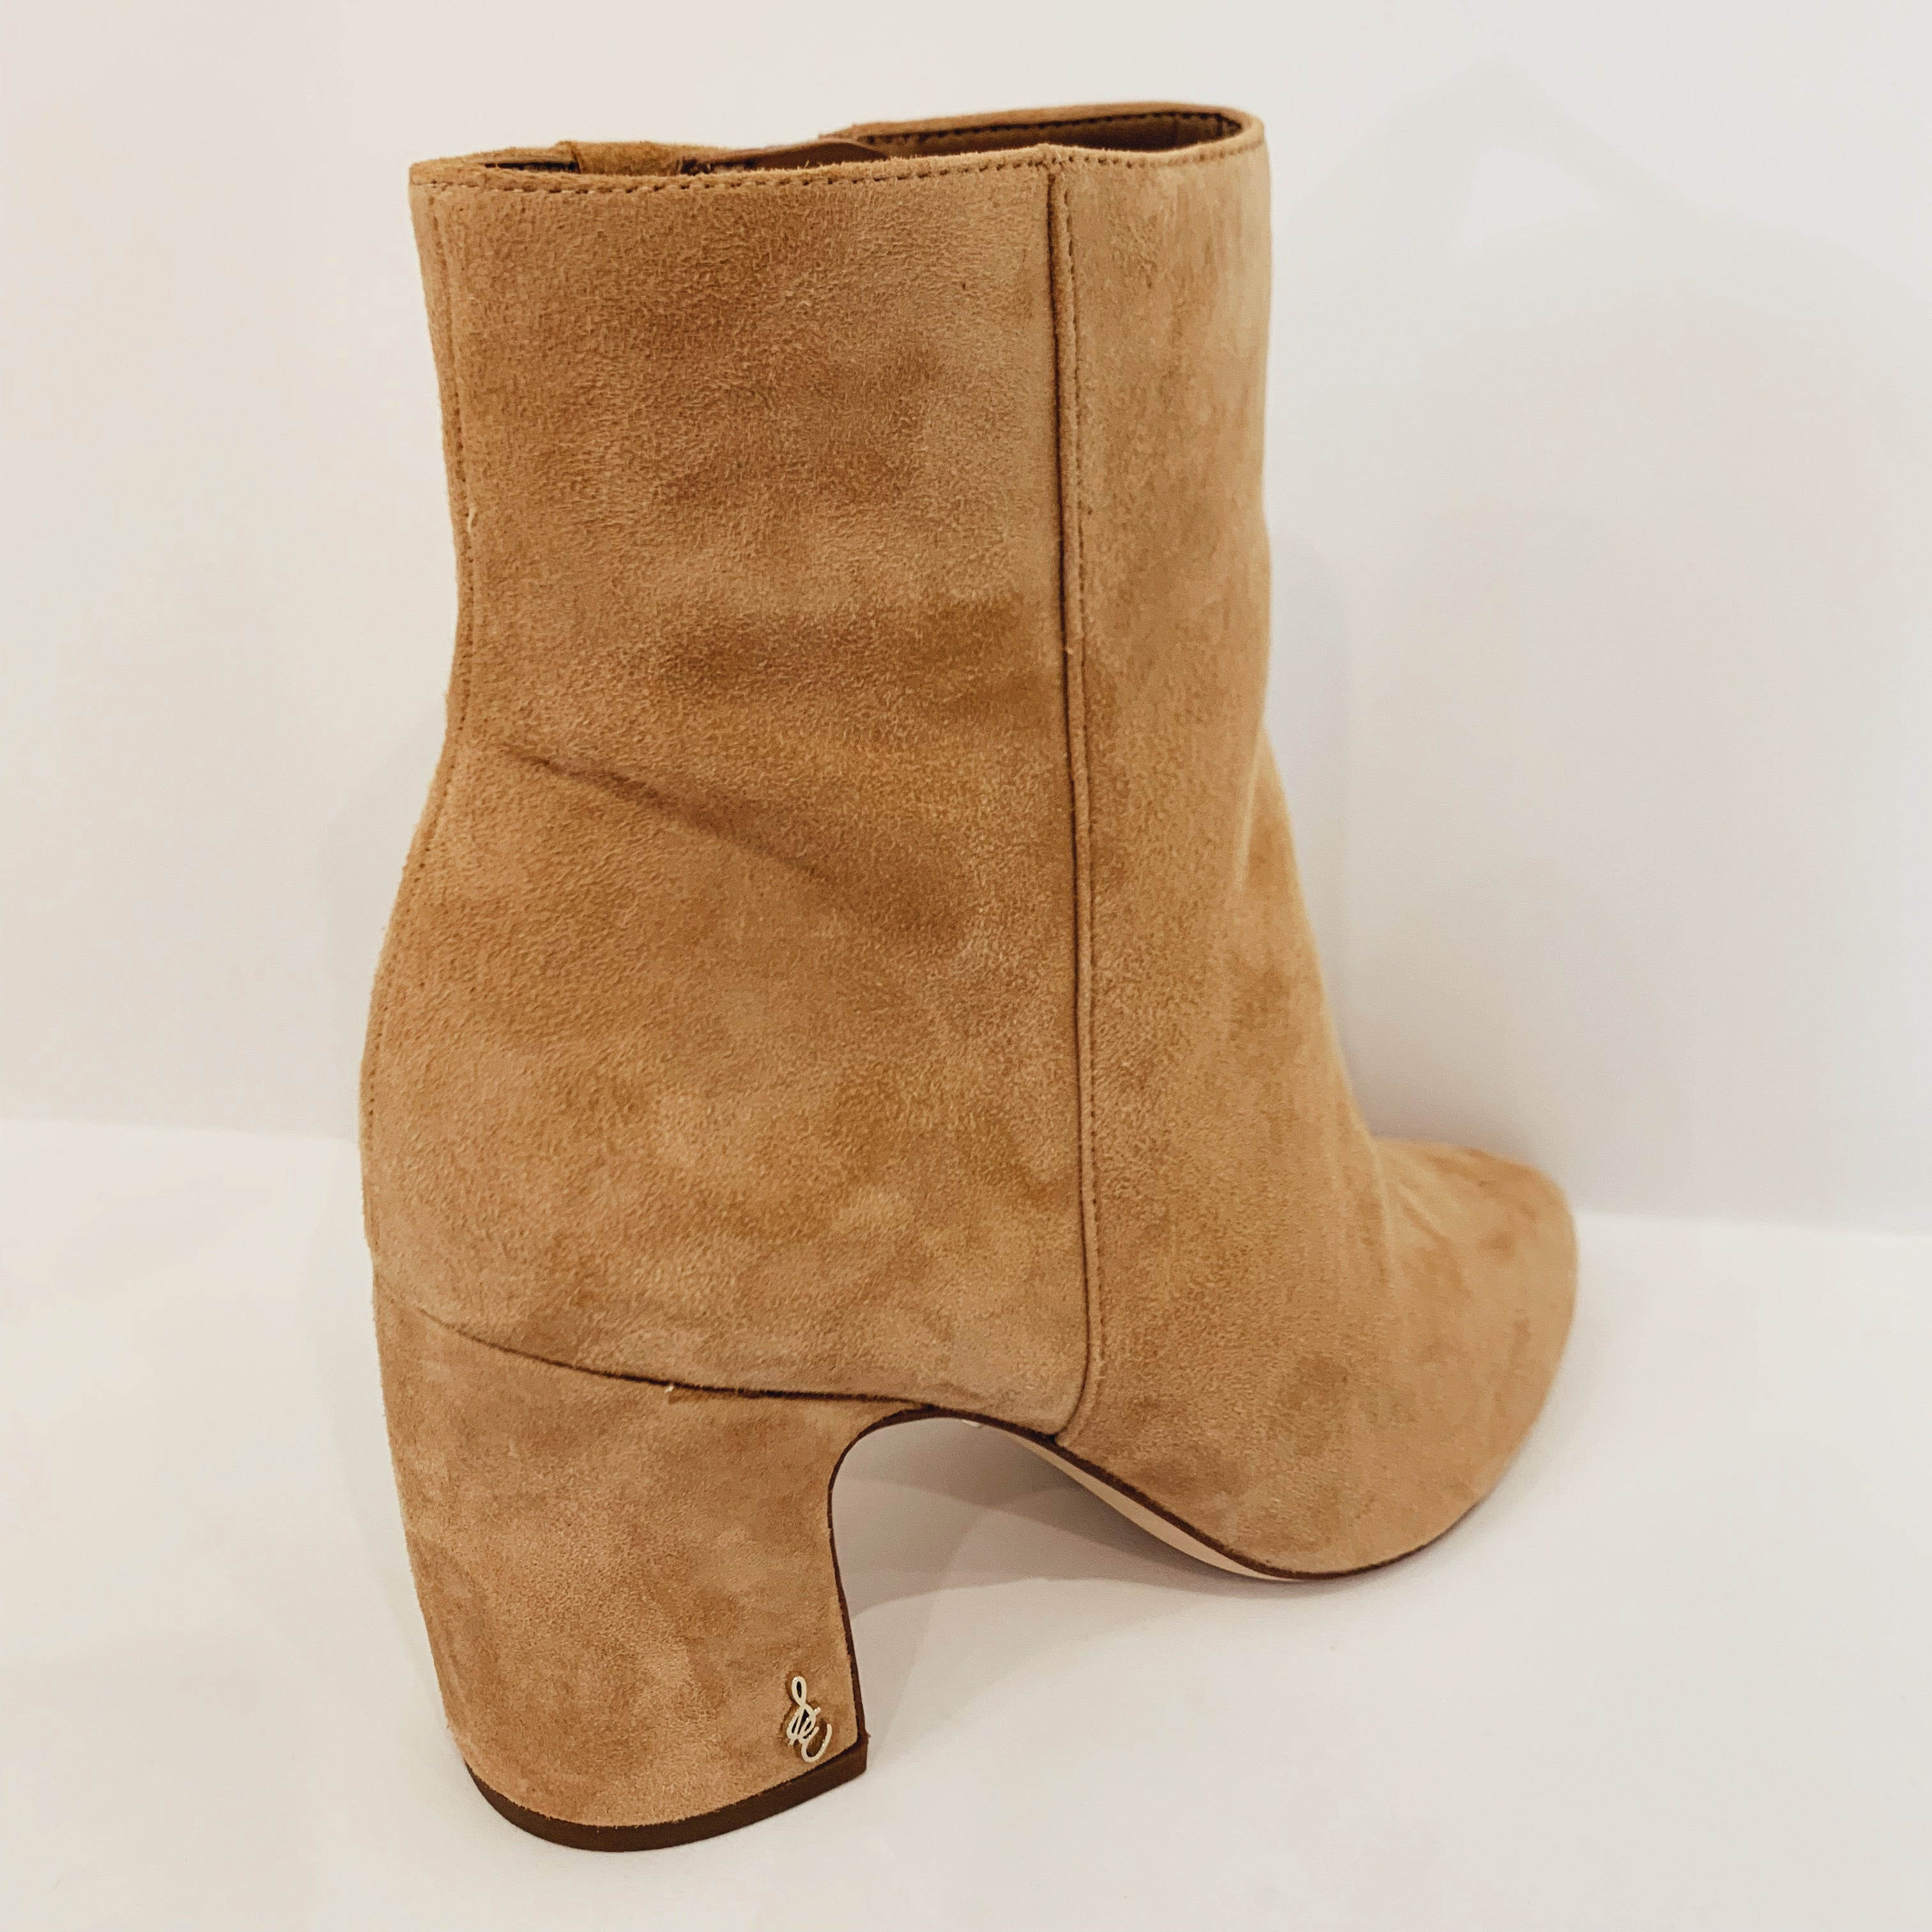 Camel Suede Bootie - Olive Street